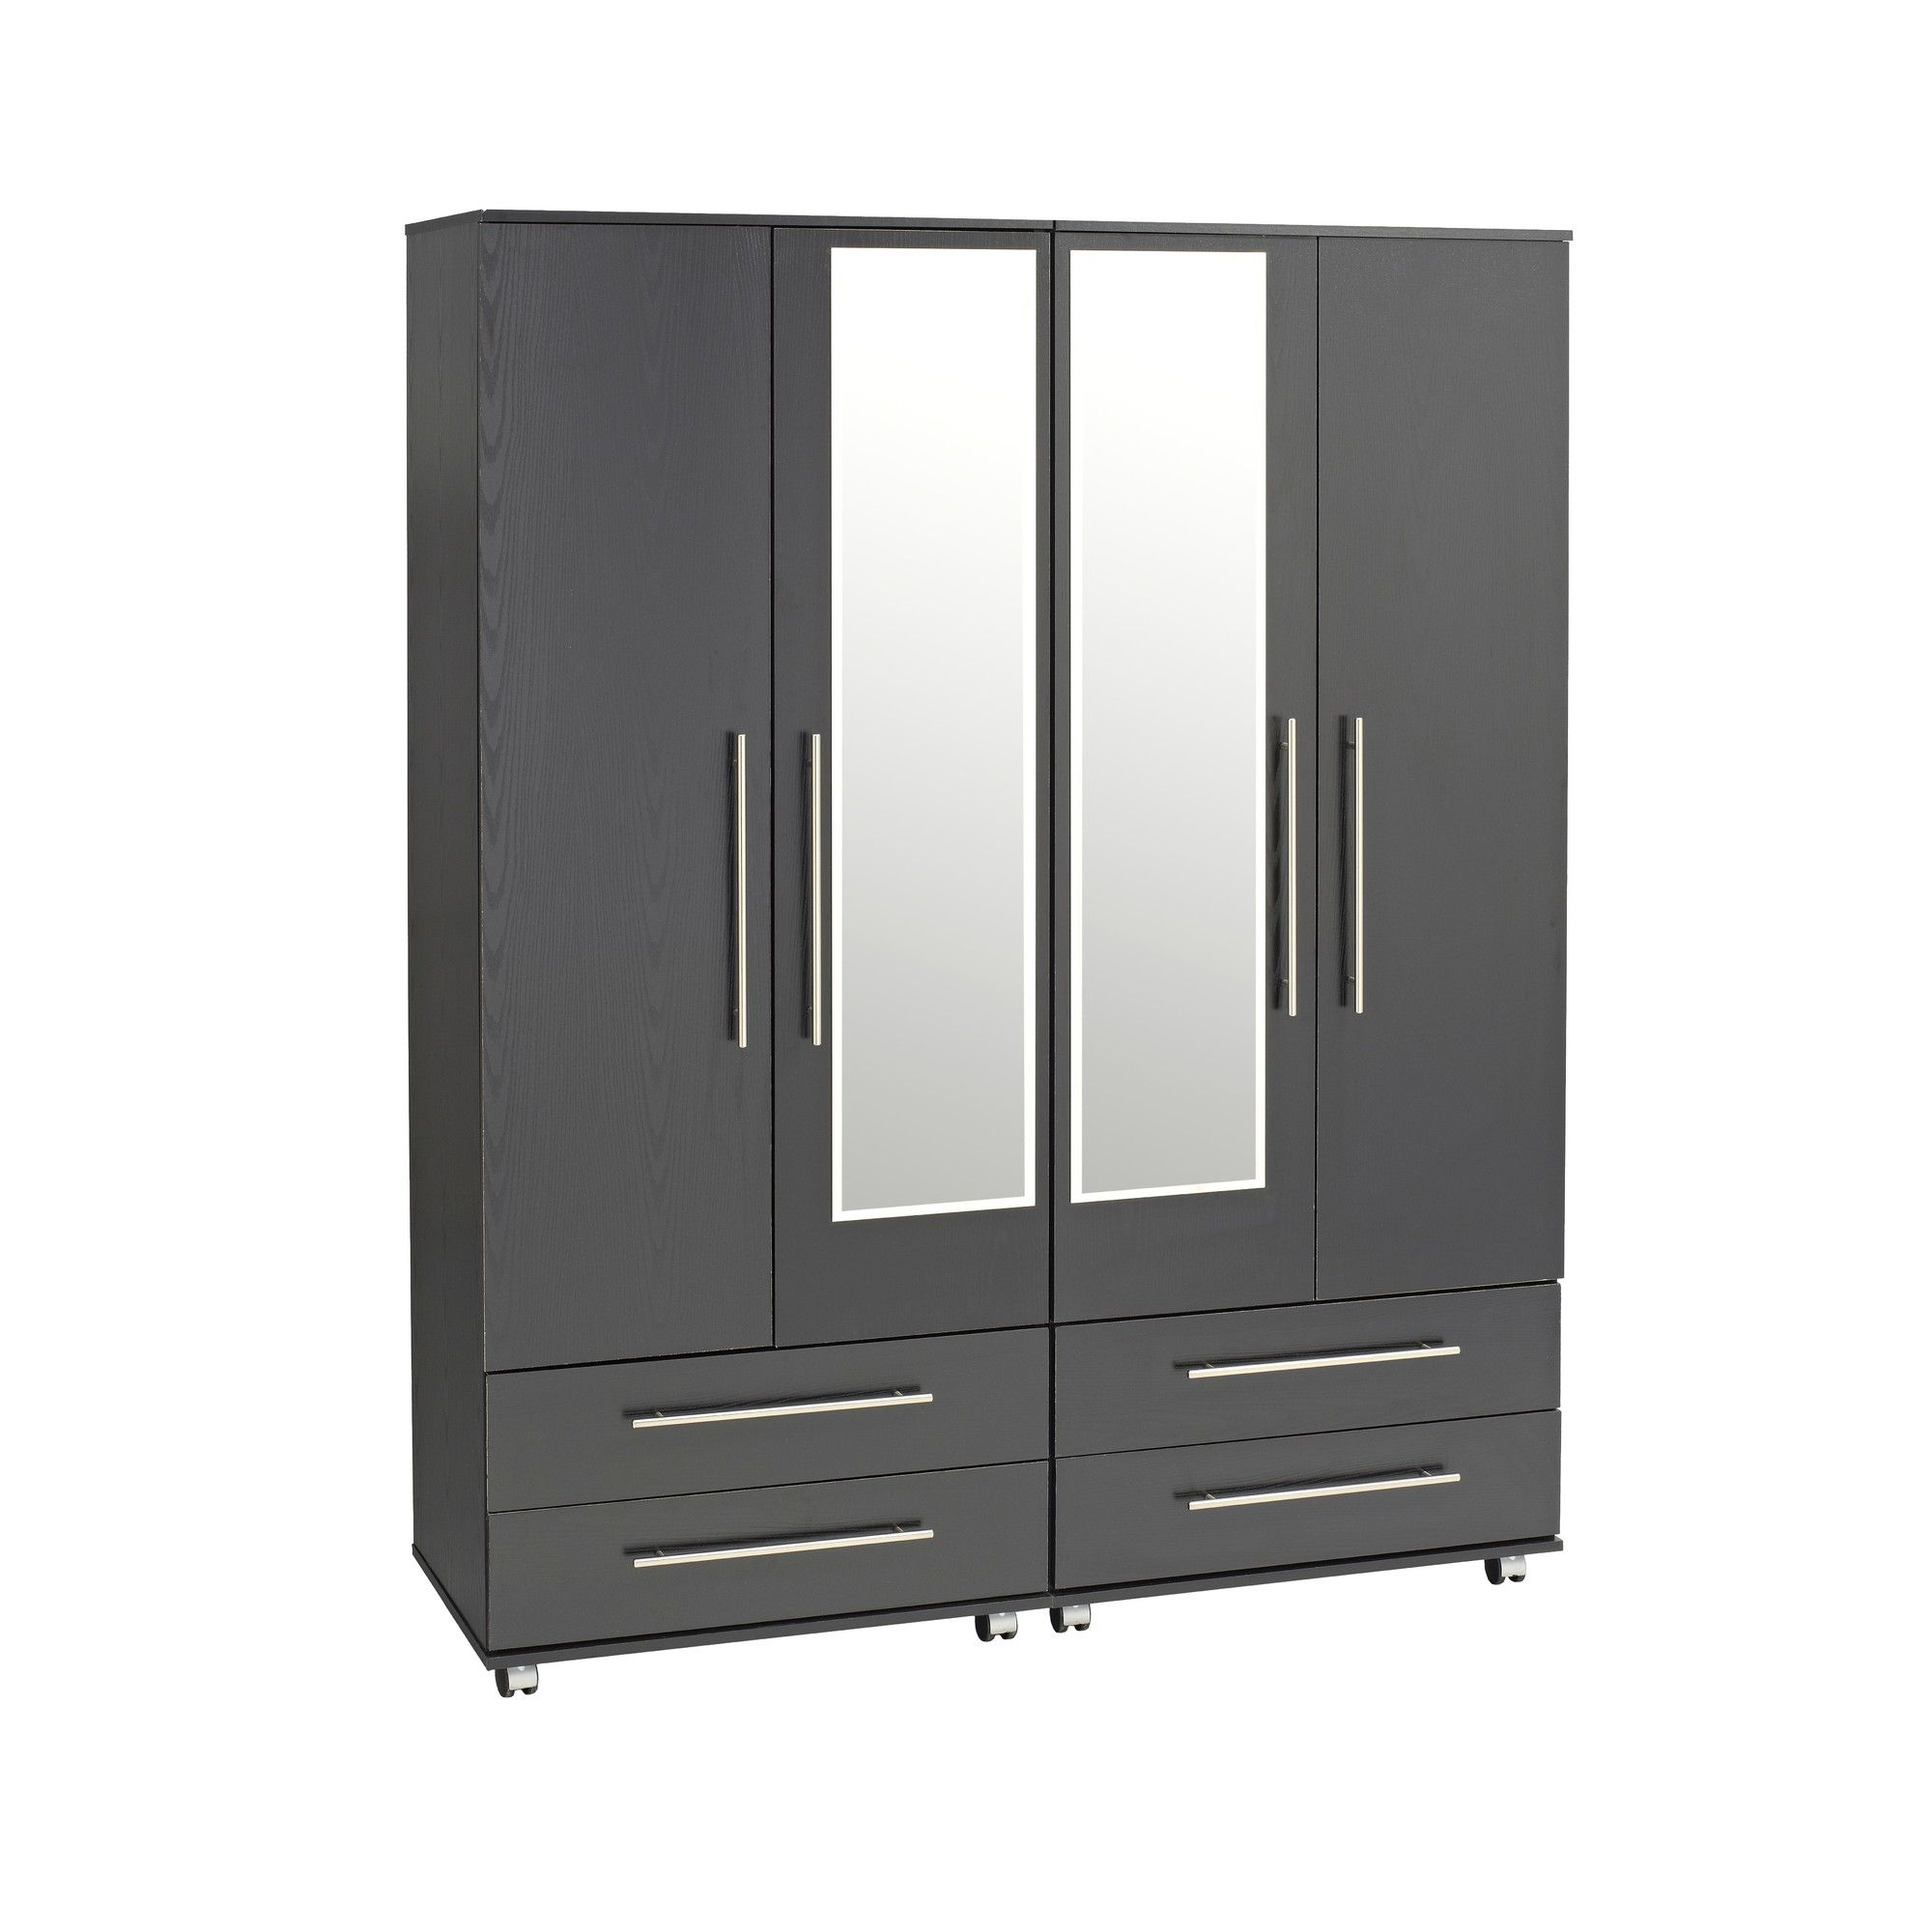 Ideal Furniture Bobby 4 Door Wardrobe - Oak at Tescos Direct